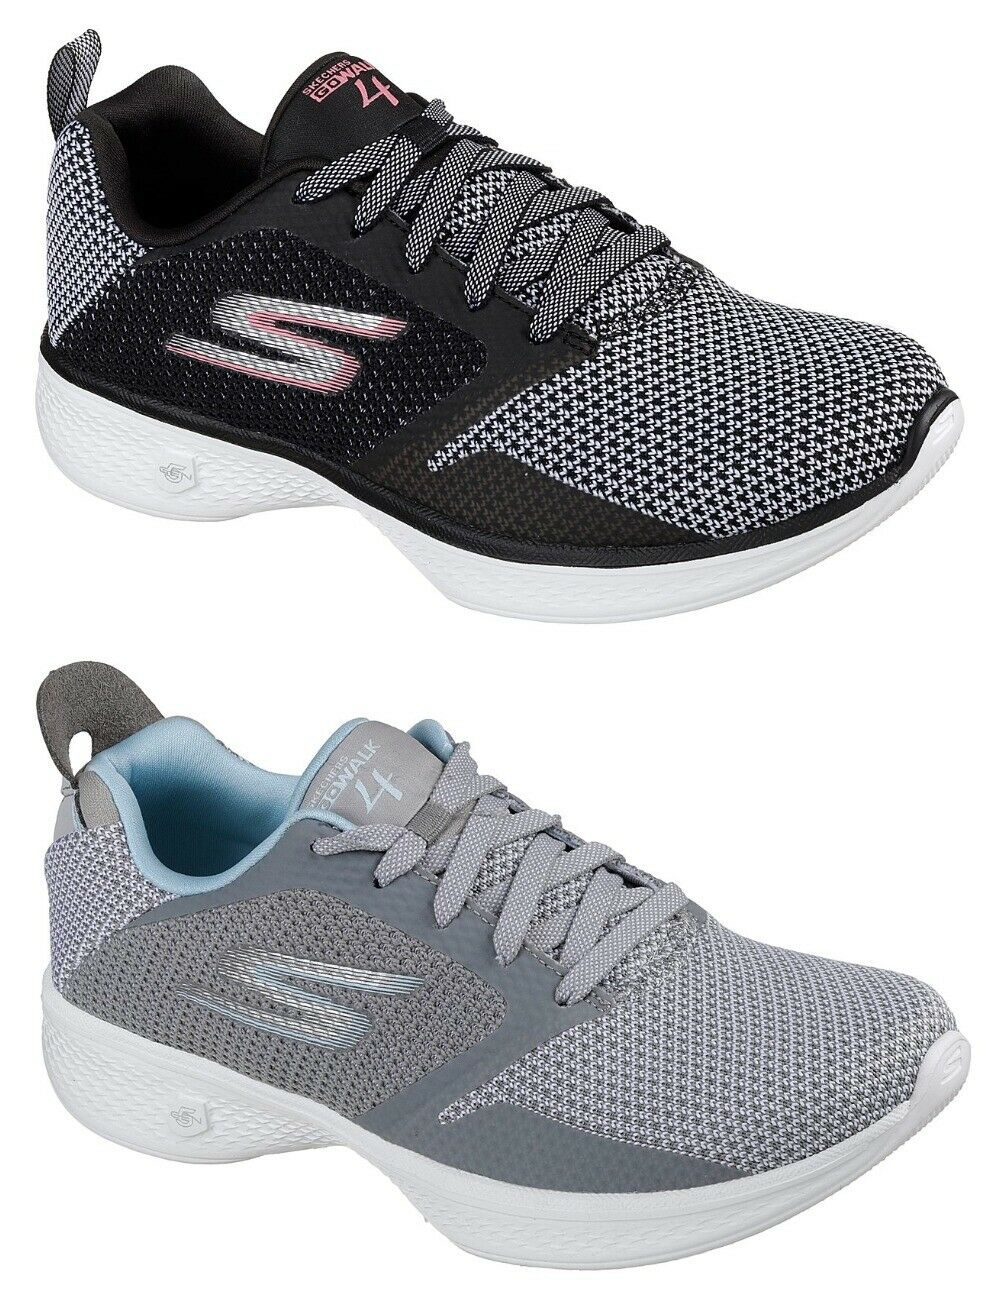 SKECHERS GO WALK 4 EDGE- 14930 BKPK GYLB damen TRAINERS LACE UP MEMORY FOAM